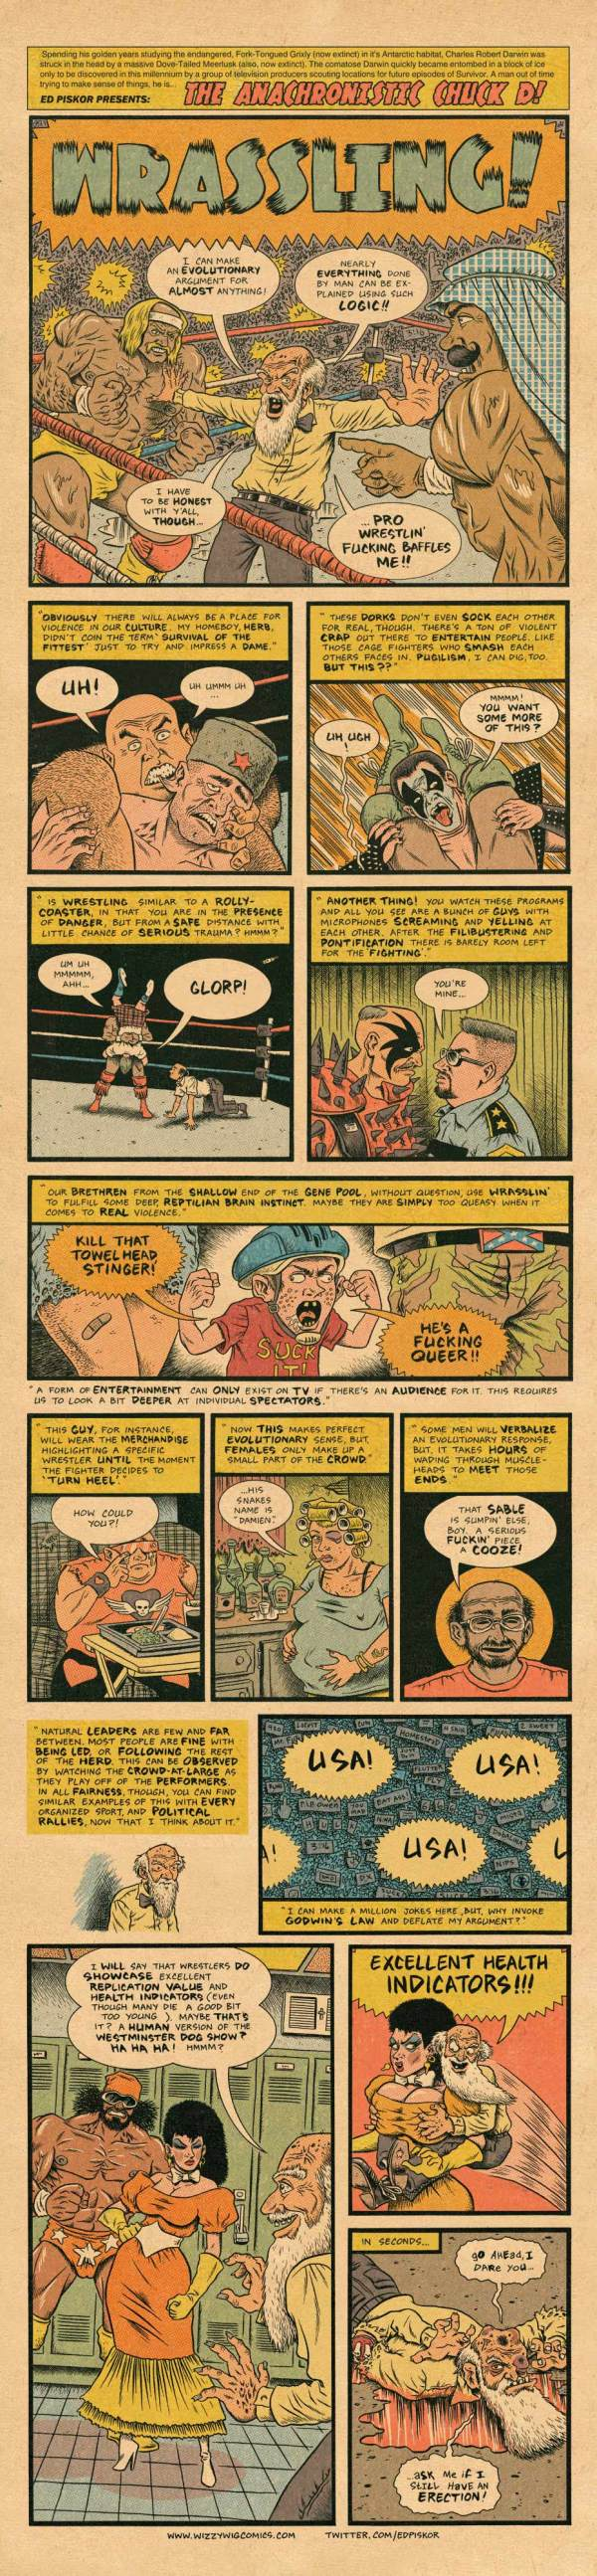 wrestling-strip